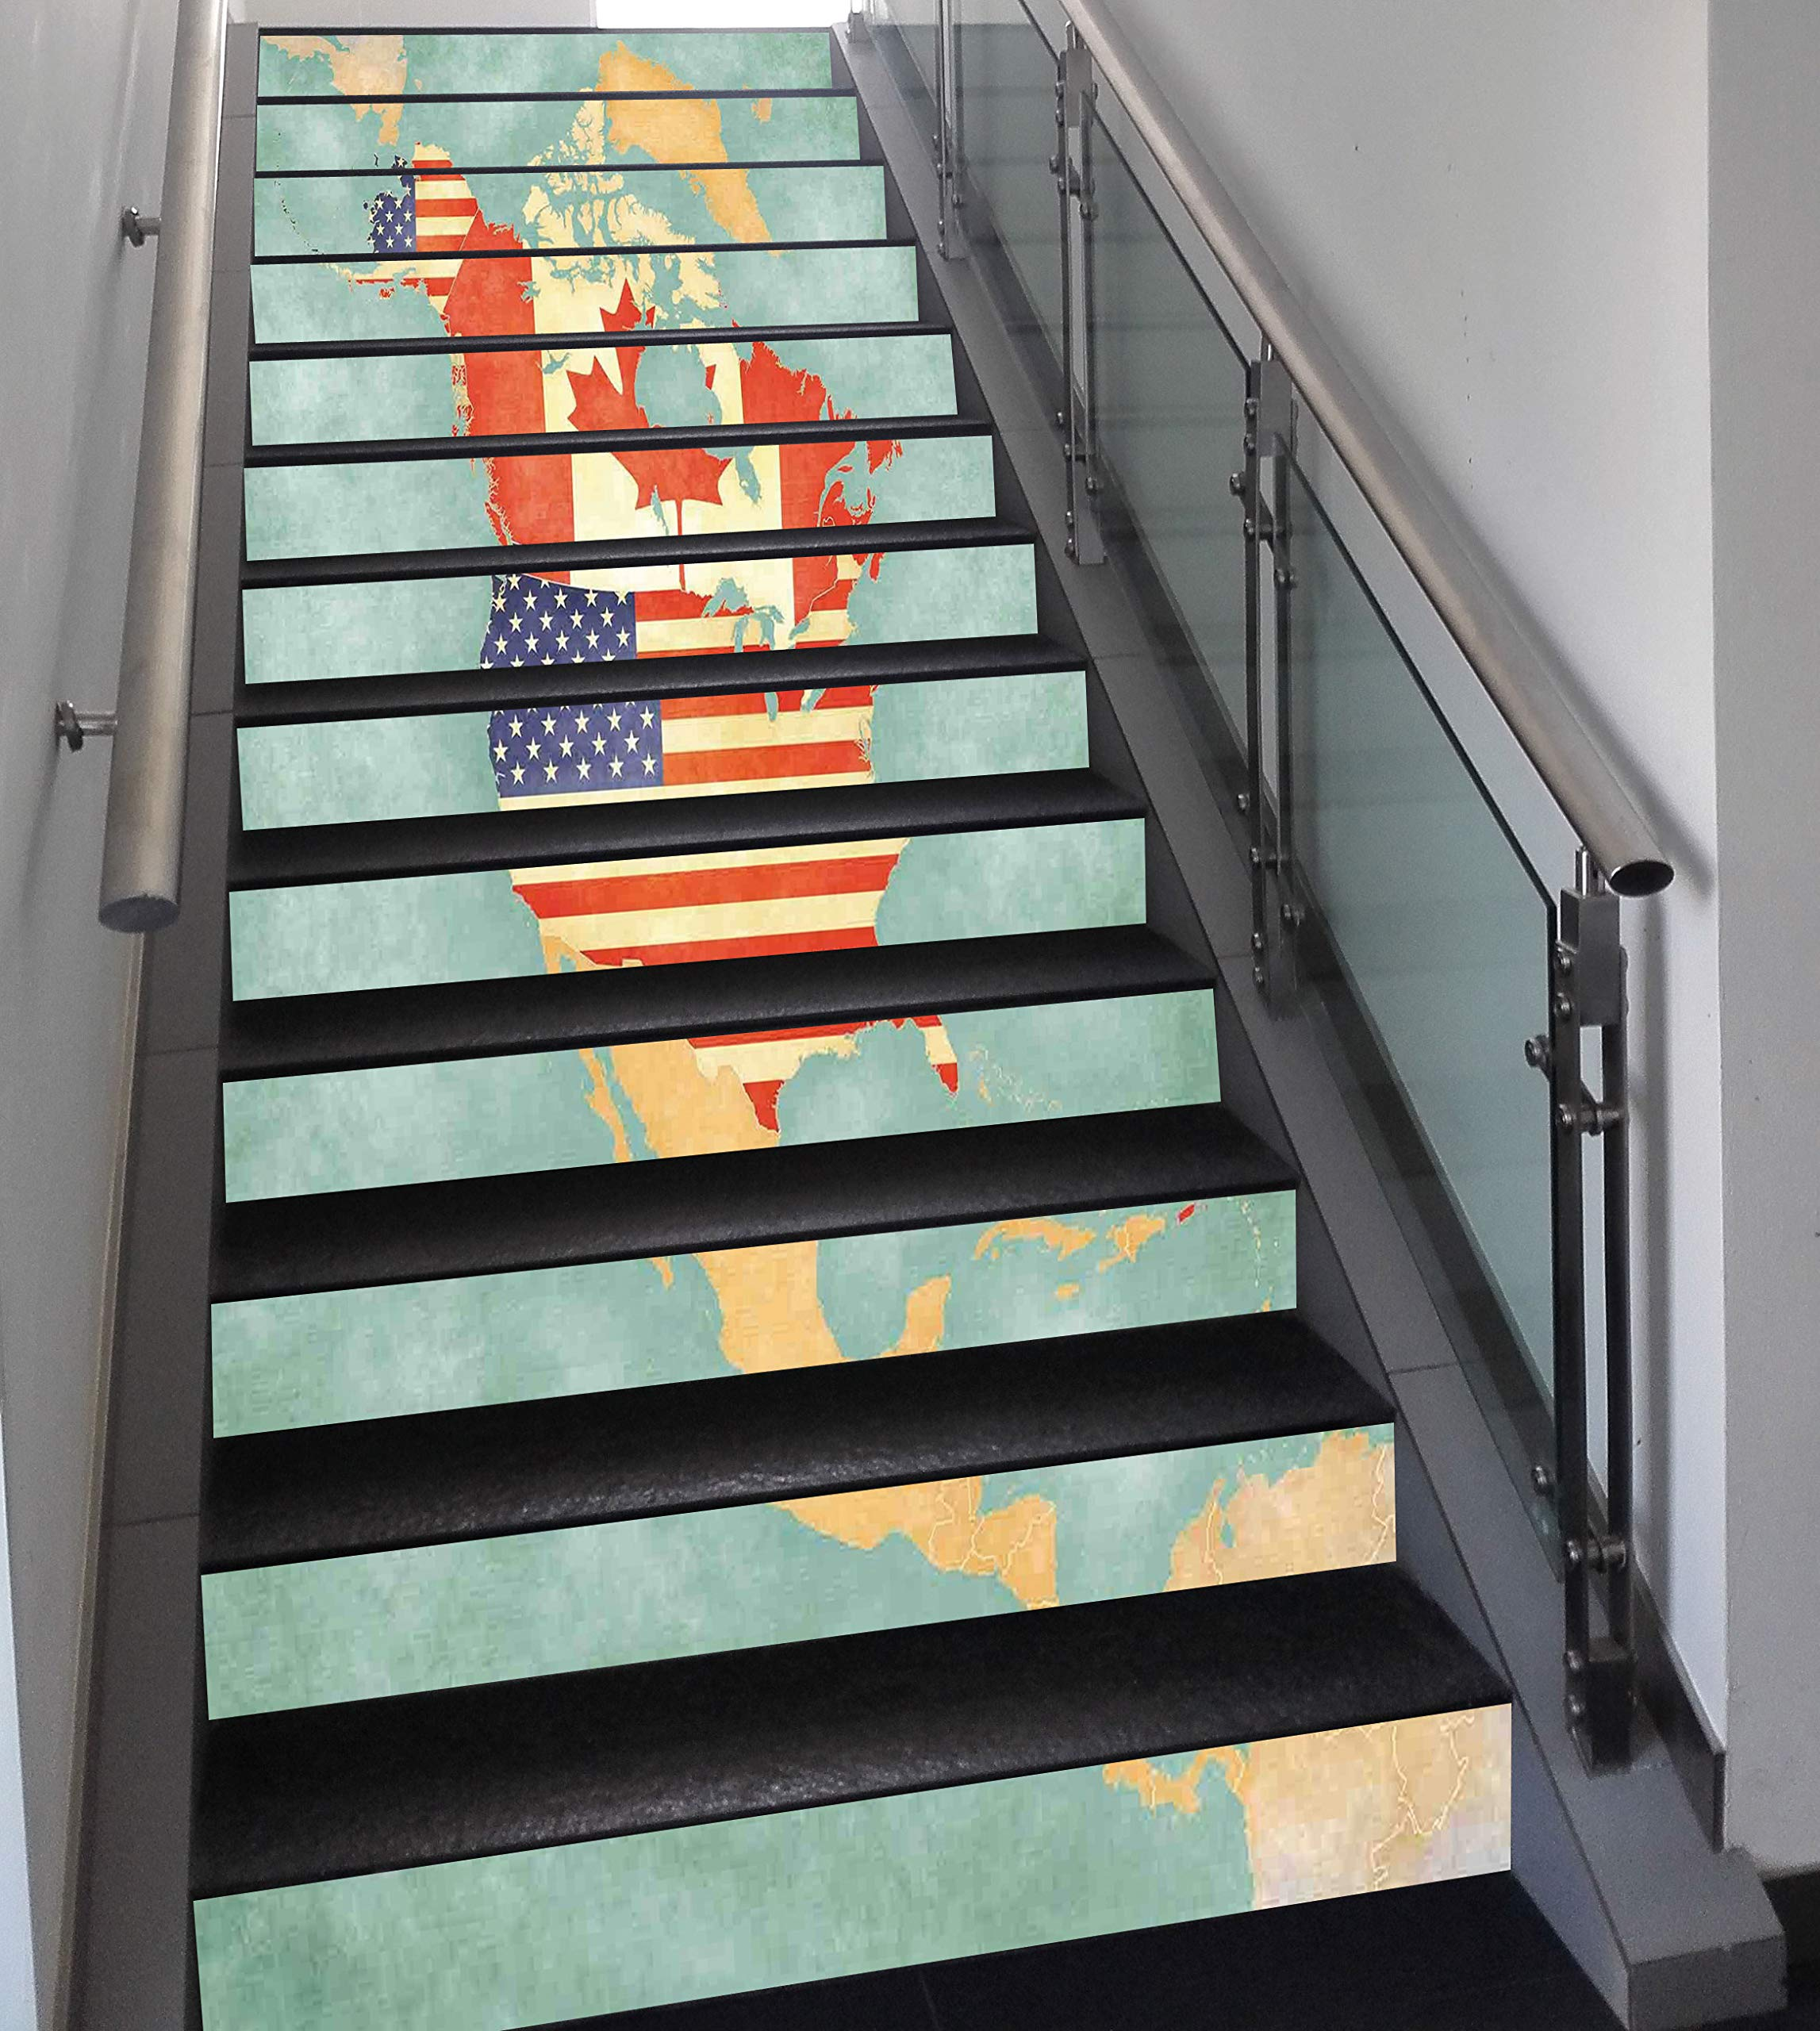 Stair Stickers Wall Stickers,13 PCS Self-adhesive,Wanderlust Decor,States and Canada Outline Map of the North America in Grunge Stylized Soft Colors,Multi,Stair Riser Decal for Living Room, Hall, Kids